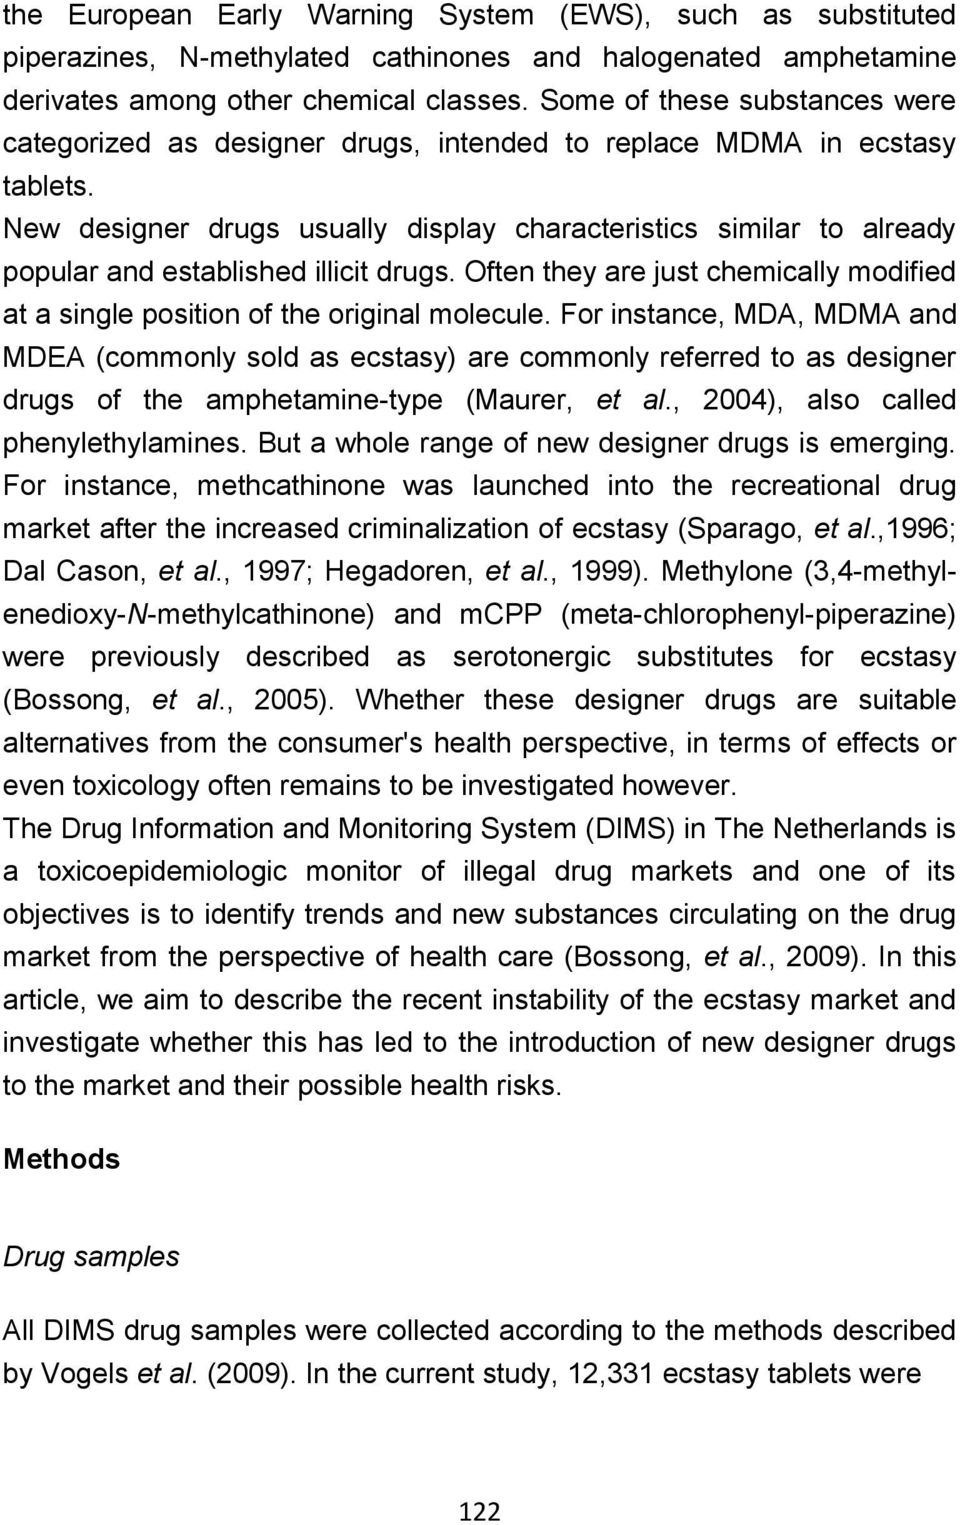 New designer drugs usually display characteristics similar to already popular and established illicit drugs. Often they are just chemically modified at a single position of the original molecule.